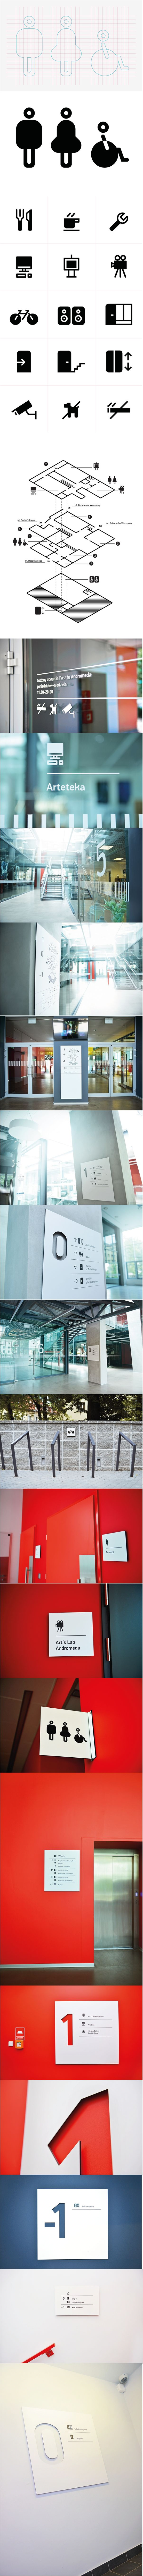 Wayfinding system - cultural and commercial passage